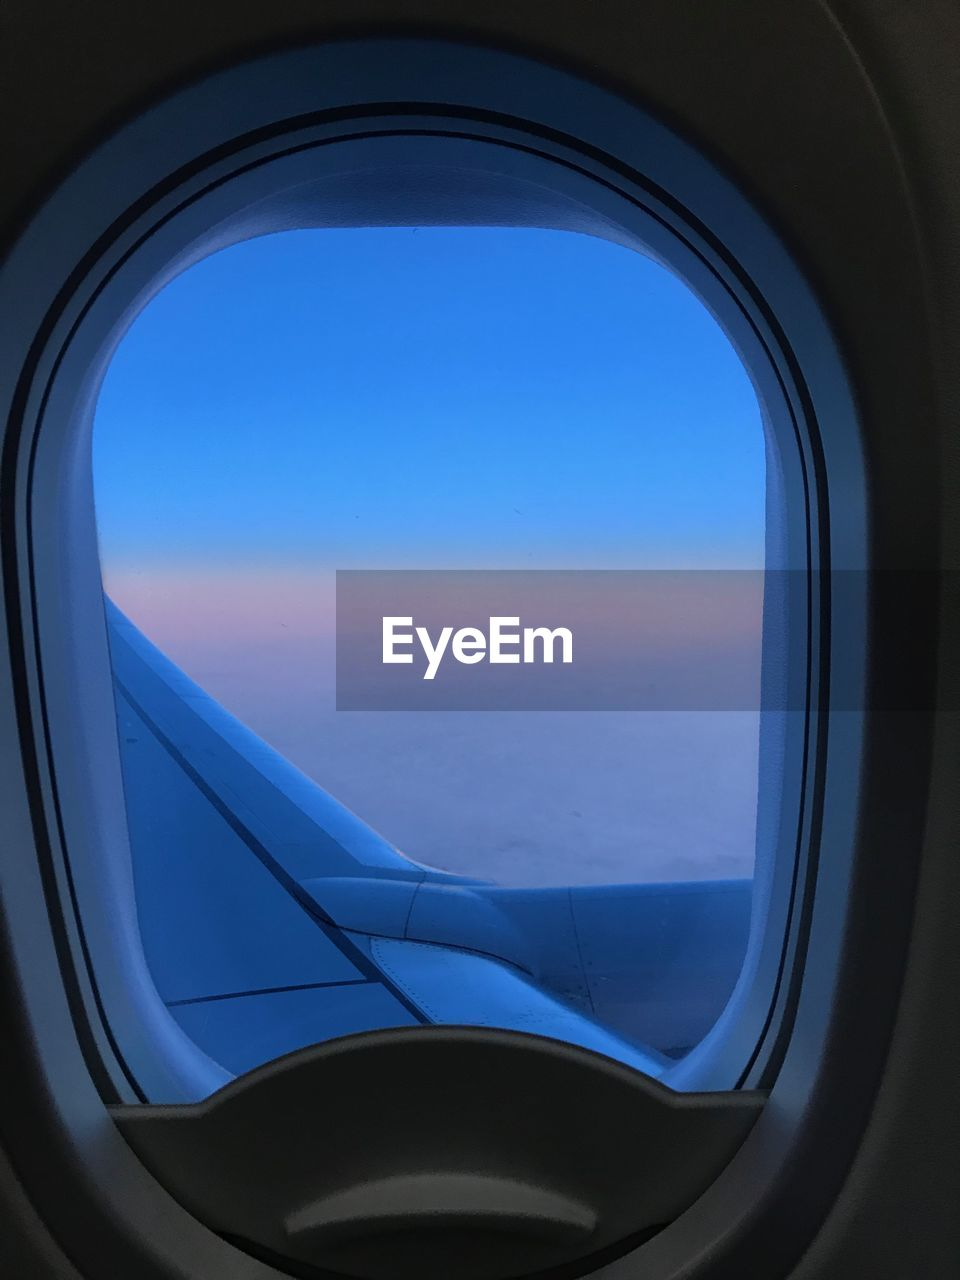 window, sky, glass - material, vehicle interior, transparent, mode of transportation, air vehicle, transportation, airplane, nature, blue, travel, no people, flying, day, mid-air, outdoors, public transportation, cloud - sky